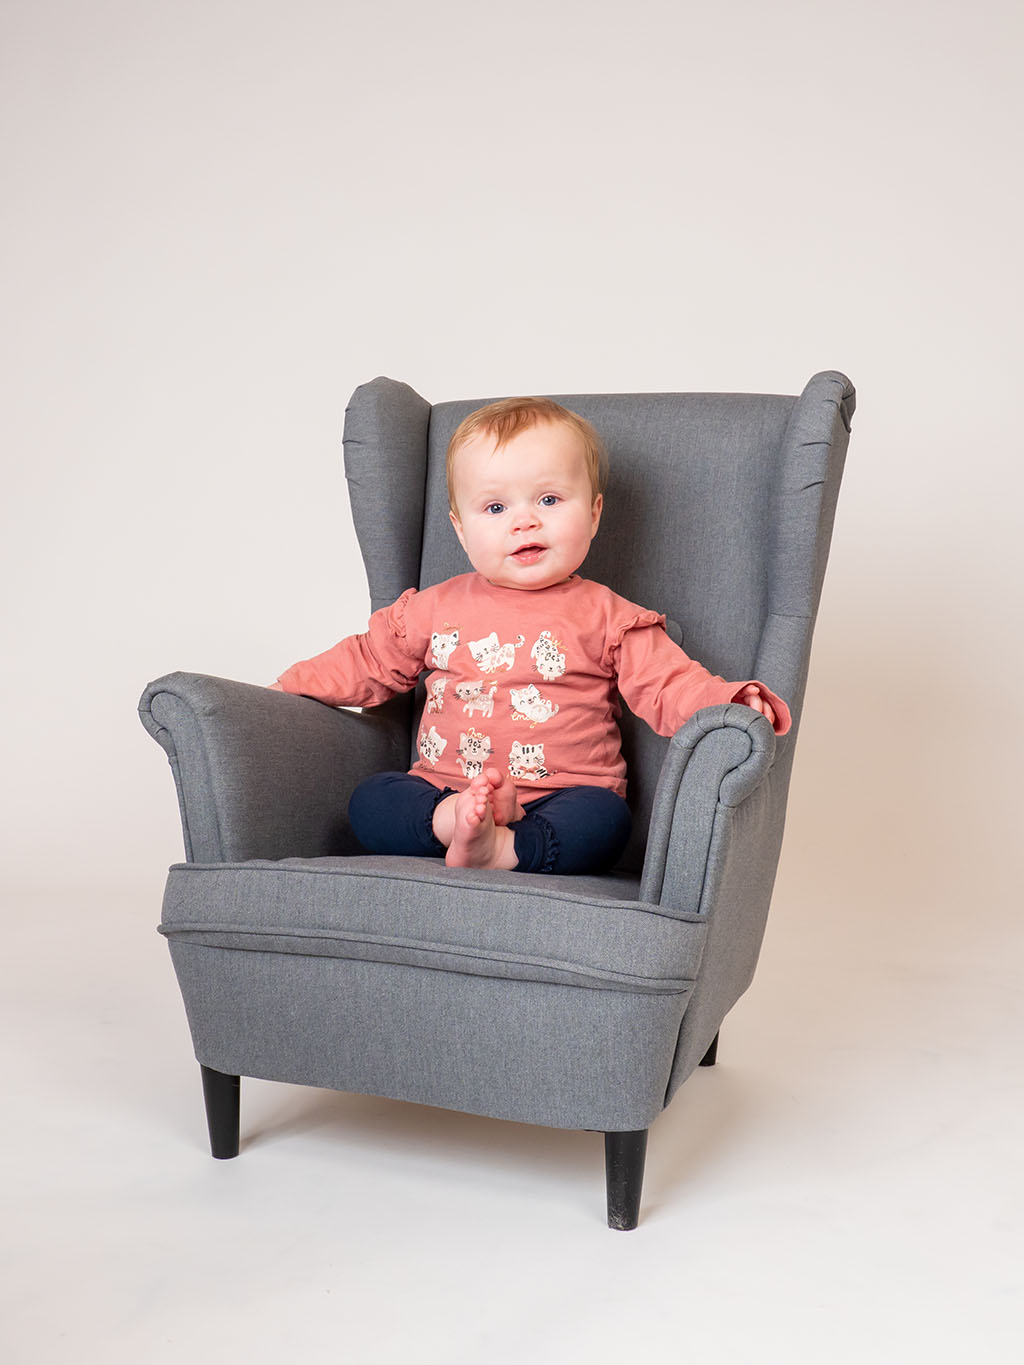 baby girl relaxing in armchair wearing pink top taken by qualified baby photographer in Braintree, Essex